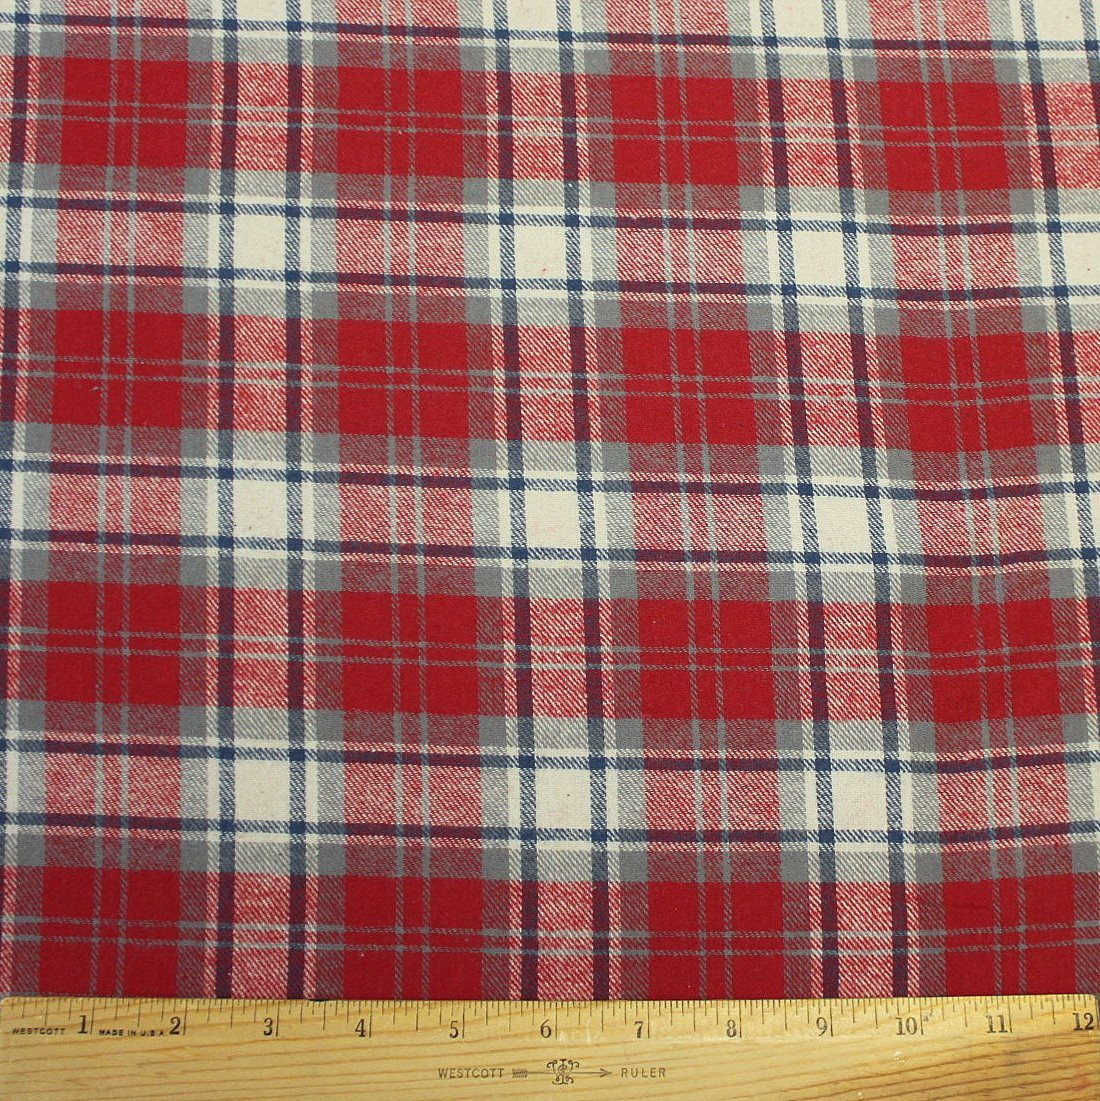 Red Grey and Blue Tartan Plaid Lightweight Woven Cotton Flannel Shirting, 1 Yard